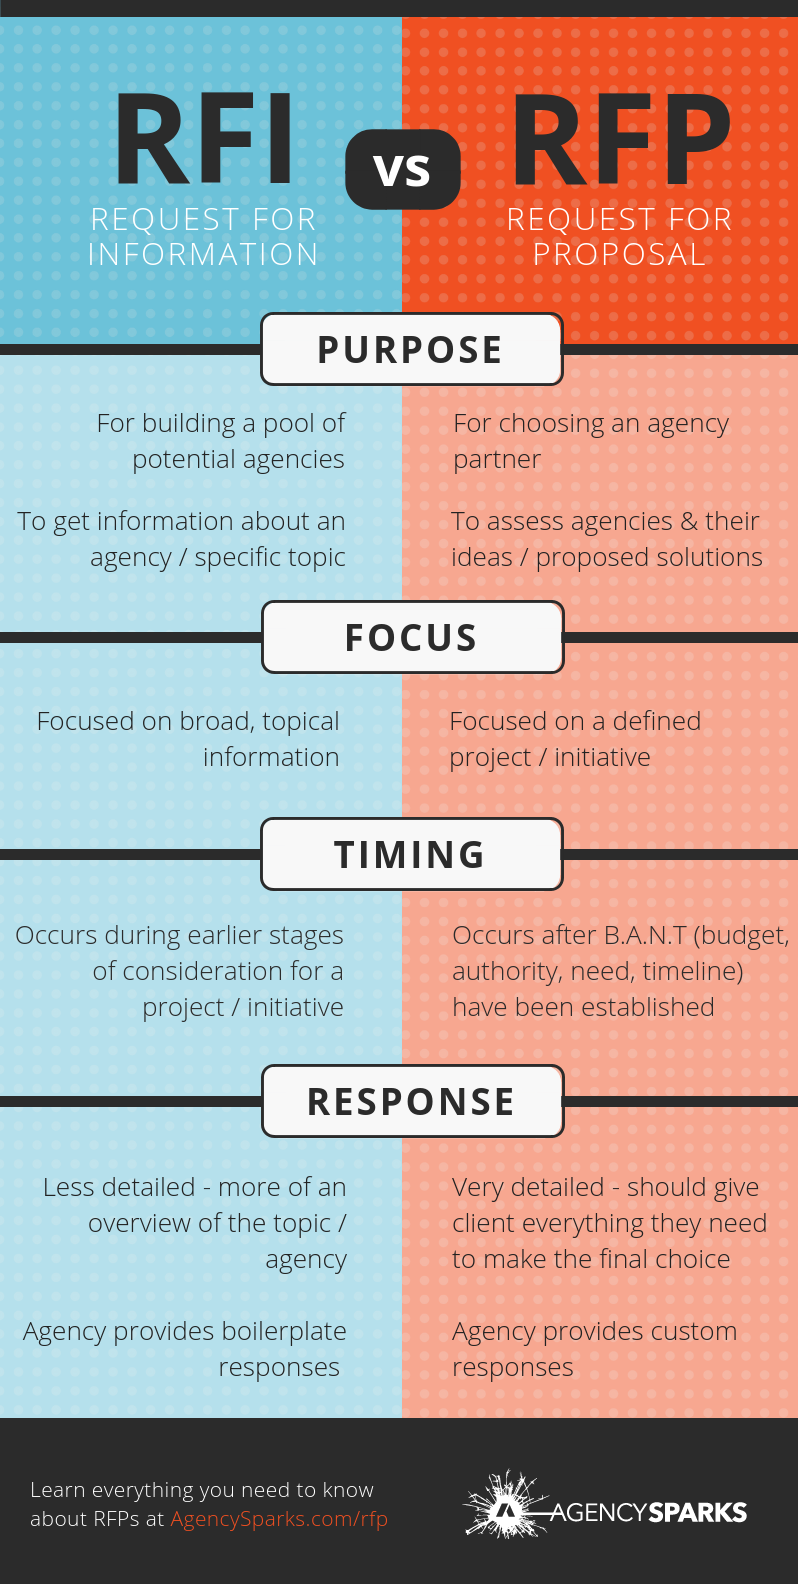 An RFP (Request for Proposal) is often confused with an RFI (Request for Information) - but the two are fundamentally different. What is the difference between an RFP and an RFI? It comes down to four key areas: Purpose, Focus, Timing, and Response. The purpose of an RFP is to select a vendor whereas the purpose of an RFI is to create a pool of qualified vendors. The Focus of an RFP is more defined, whereas an RFI is broad and often topical. The timing of an RFP occurs later on in the procurement cycle than an RFI. Lastly, the response for an RFP is much more detailed and customized than for an RFI. Learn more about RFPs at AgencySparks.com/RFP.